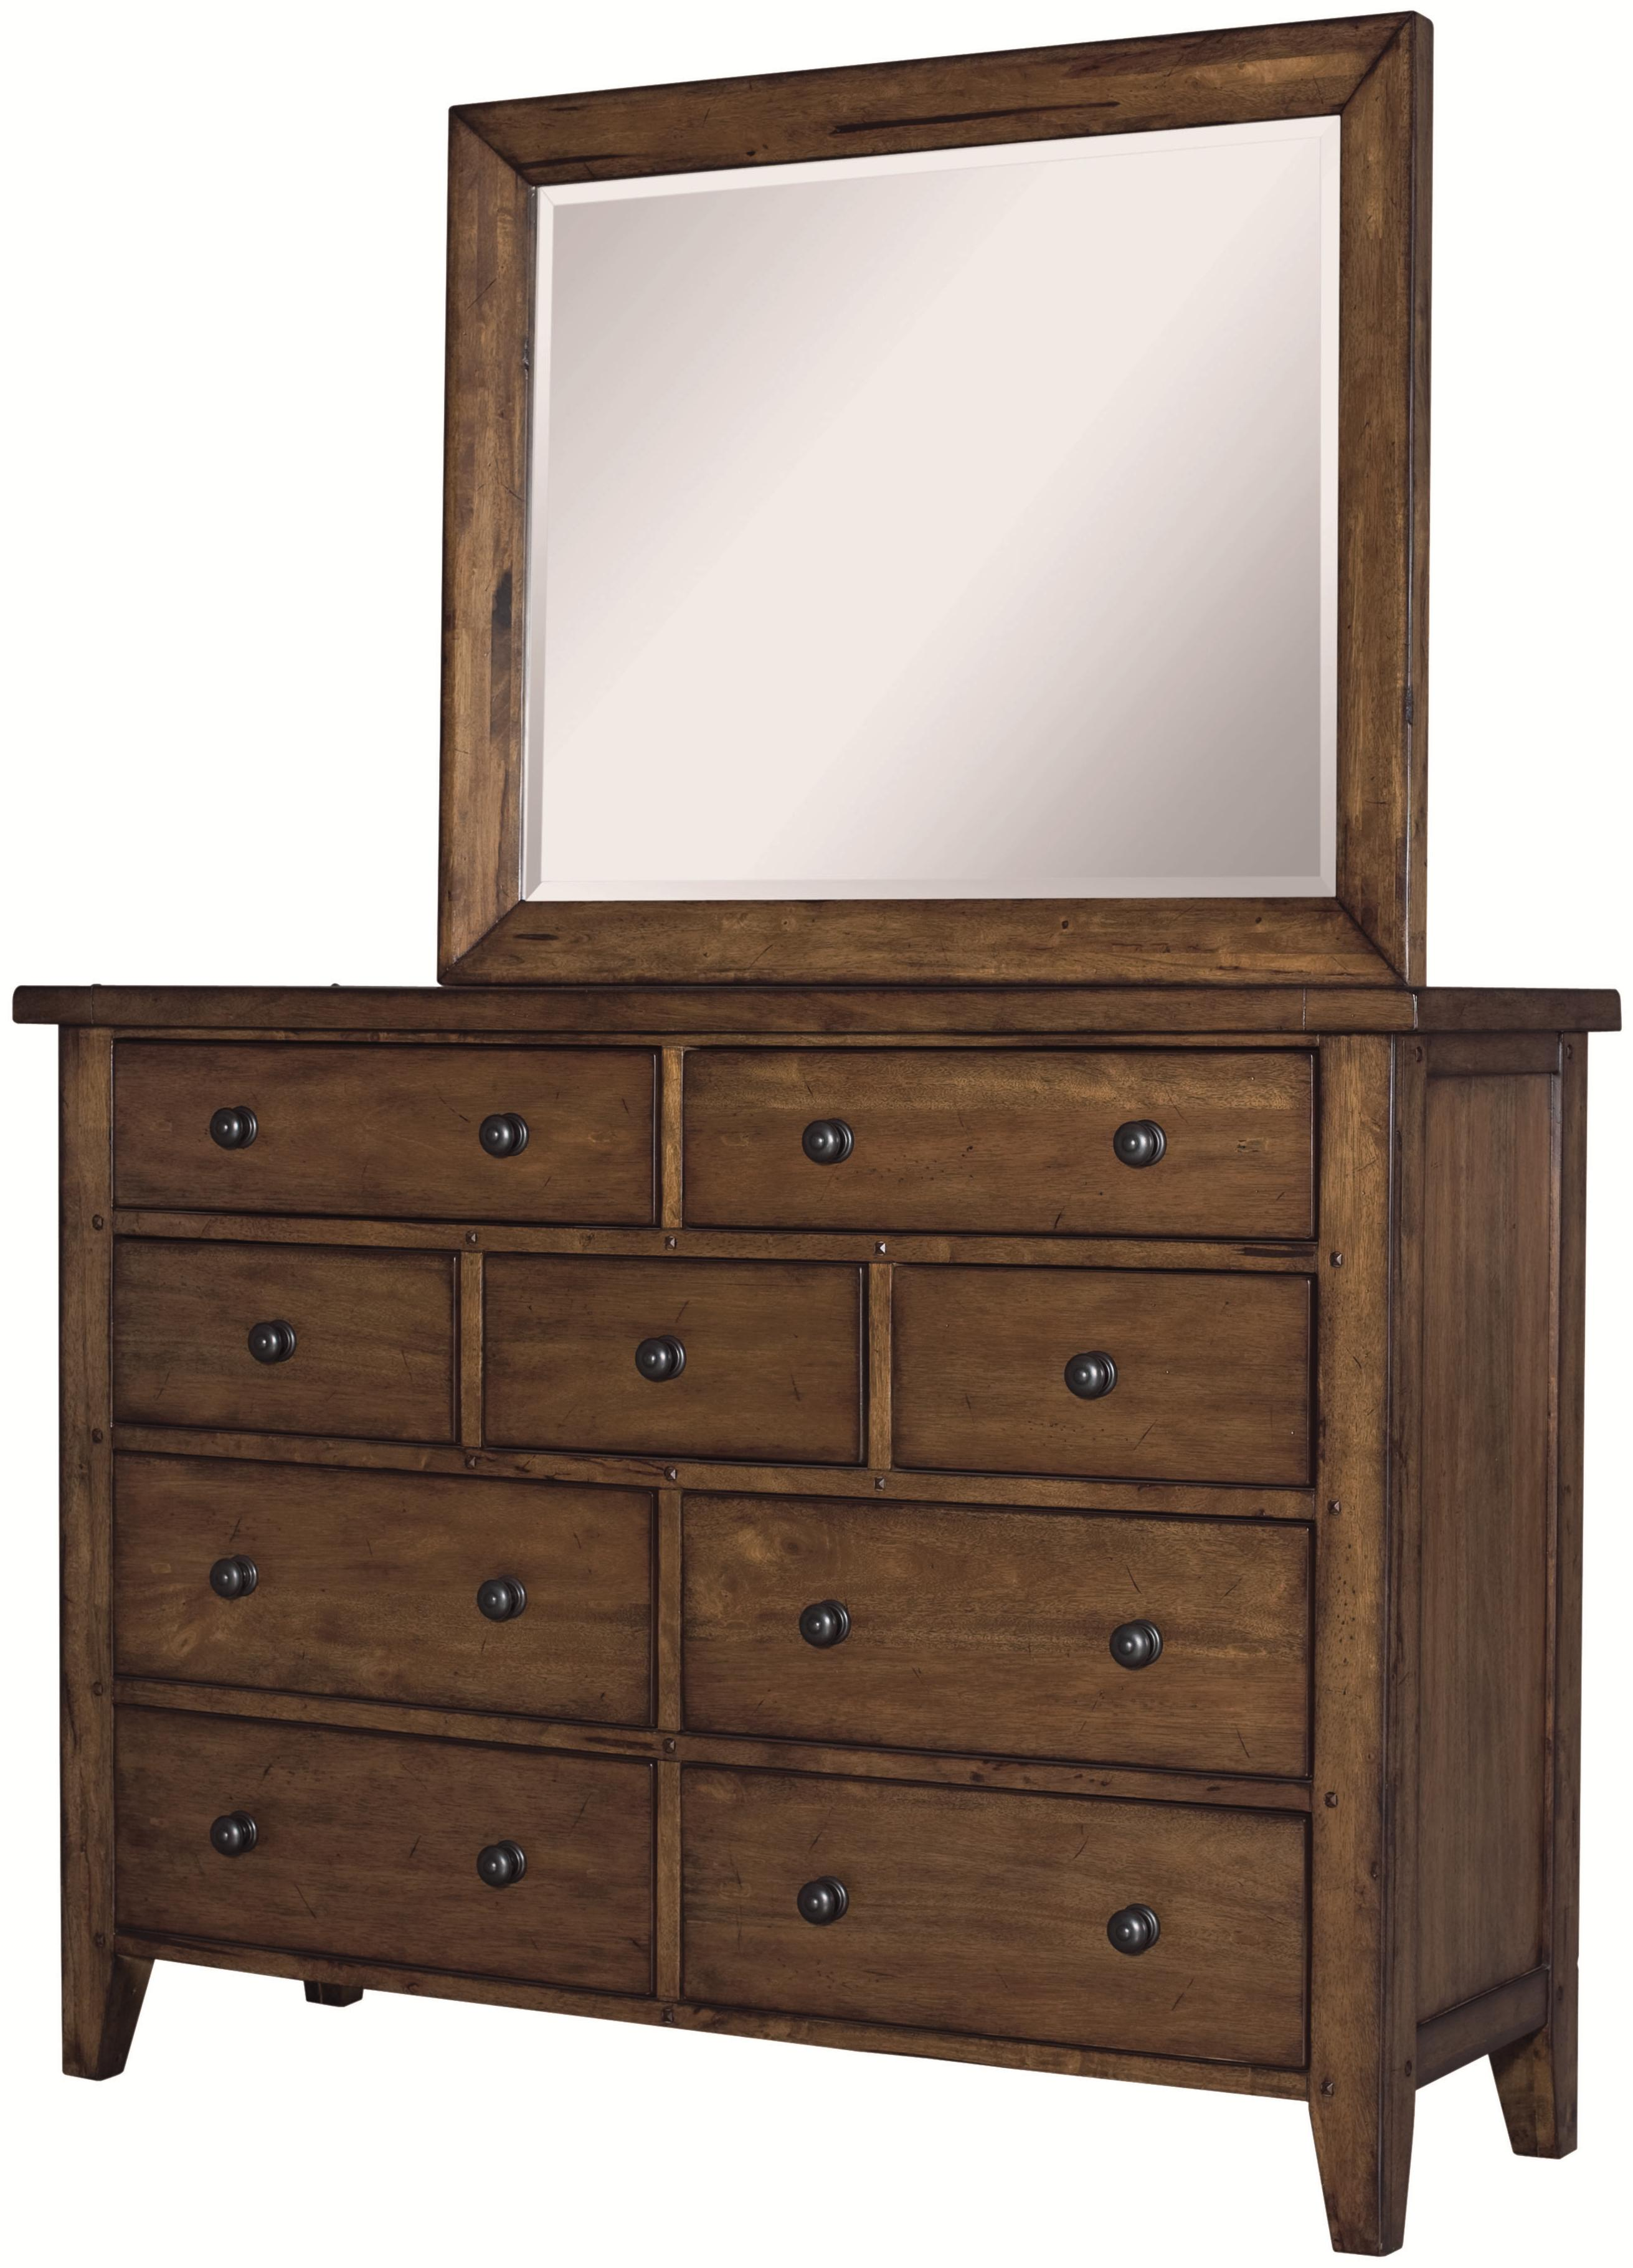 Aspenhome Cross Country Chesser & Mirror - Item Number: IMR-455+463